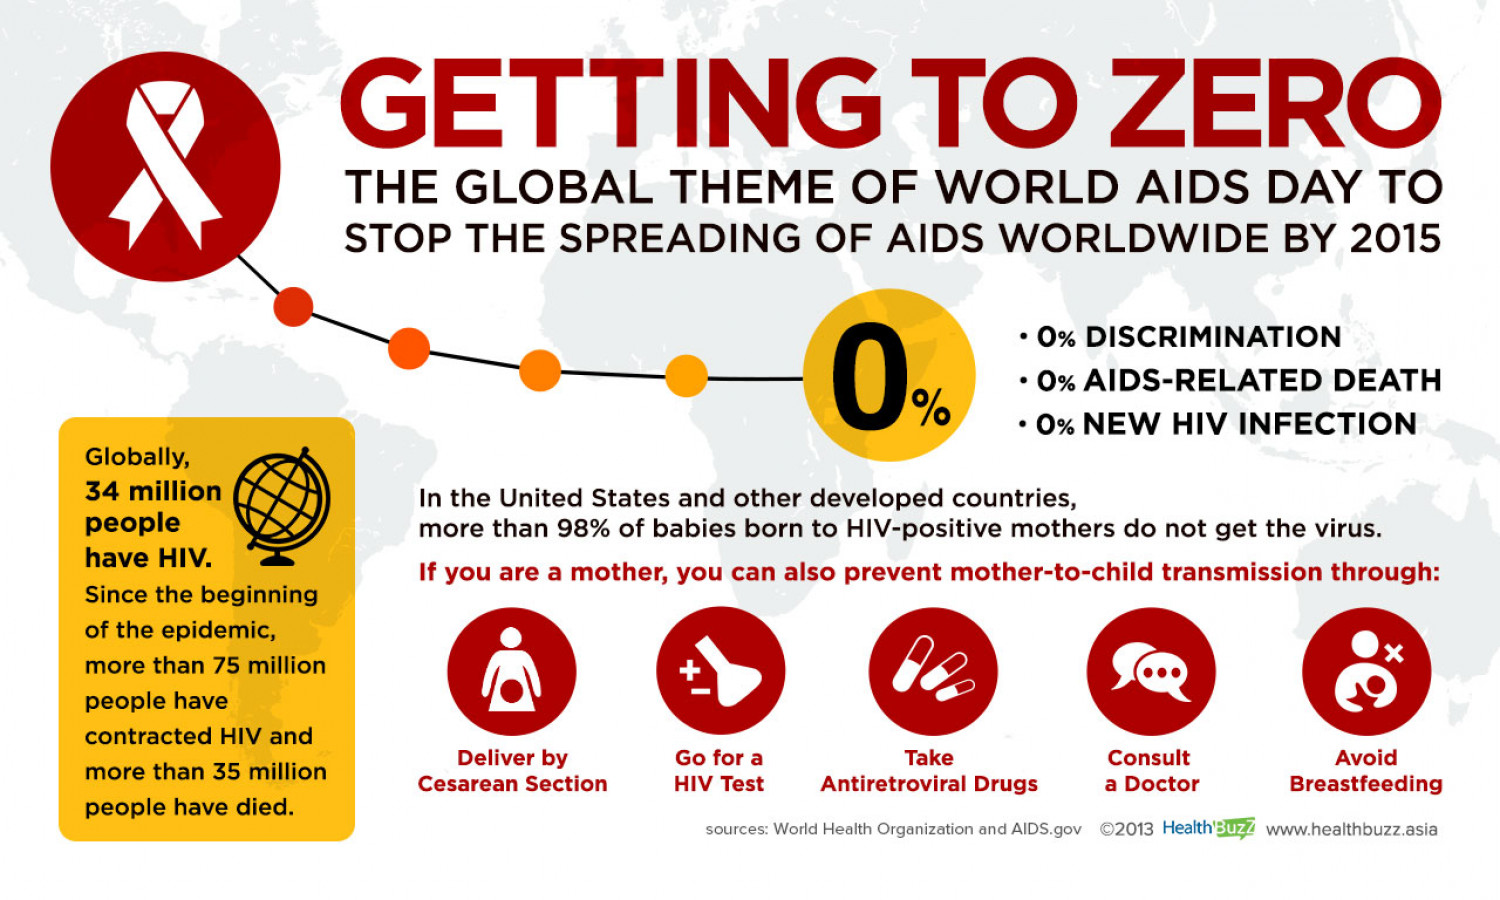 Getting to Zero - Global Theme of World AIDS Day Infographic